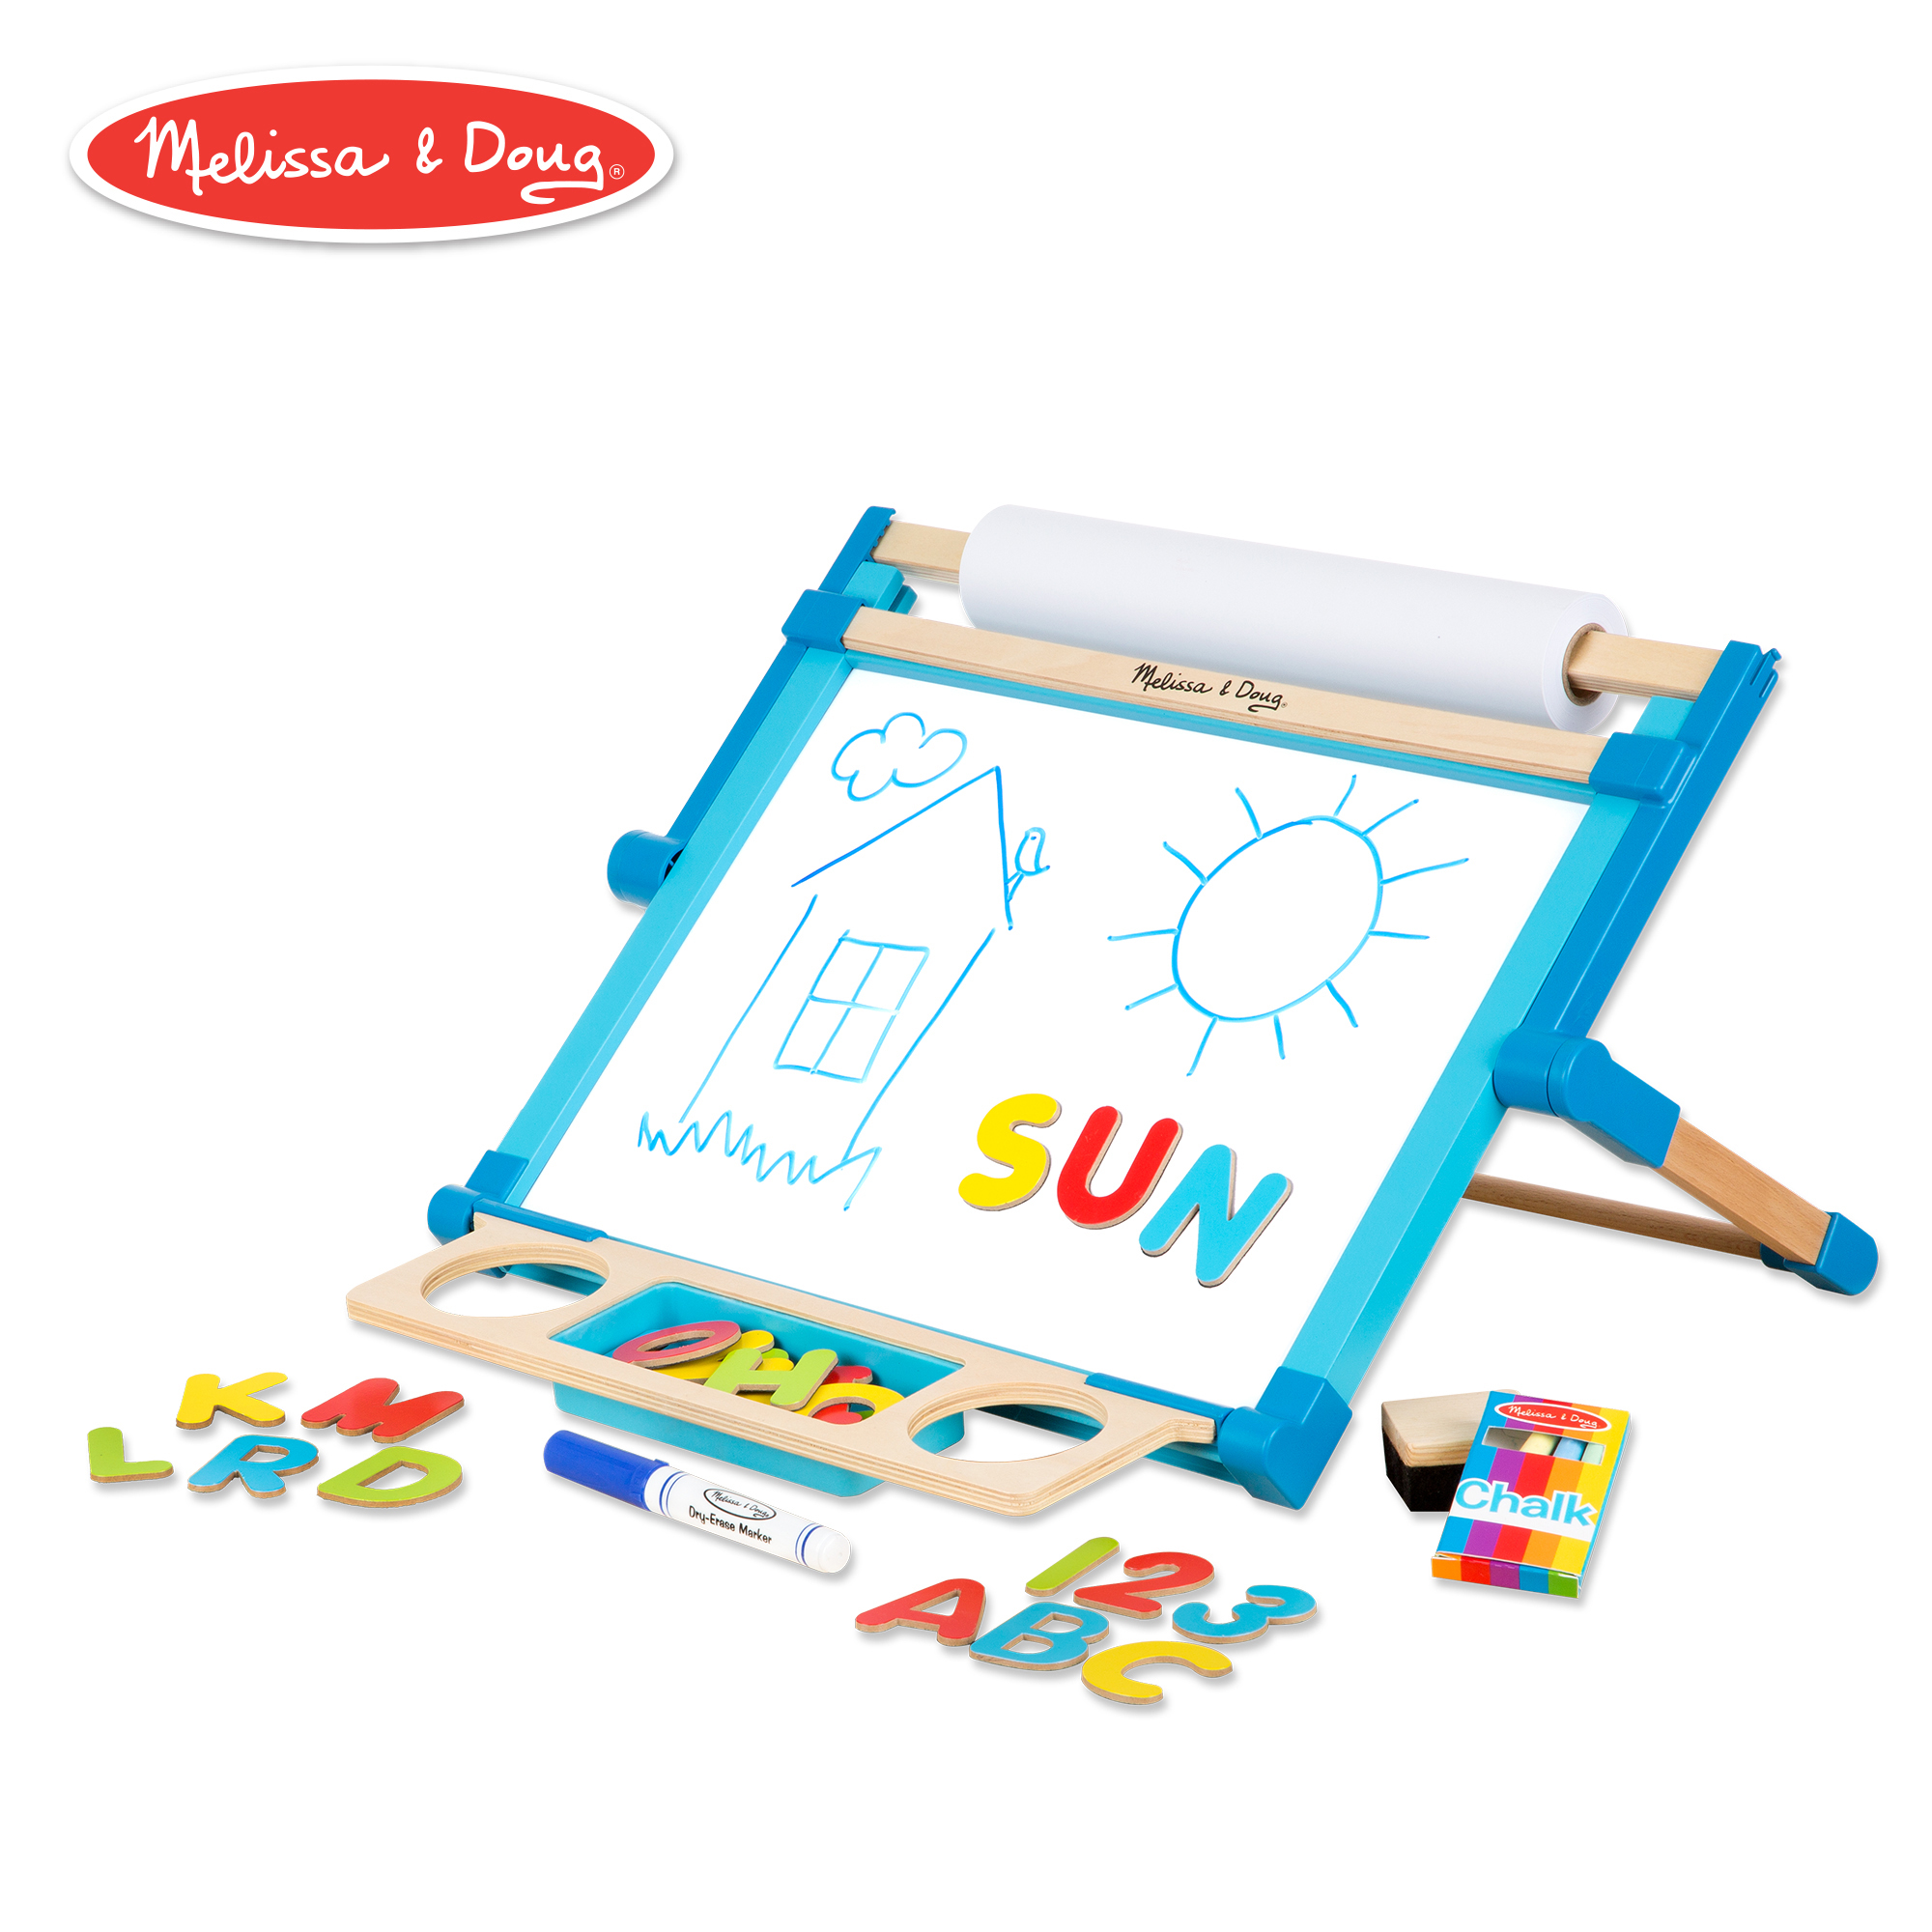 Double-Sided Magnetic Tabletop Art Easel - Dry-Erase Board and Chalkboard